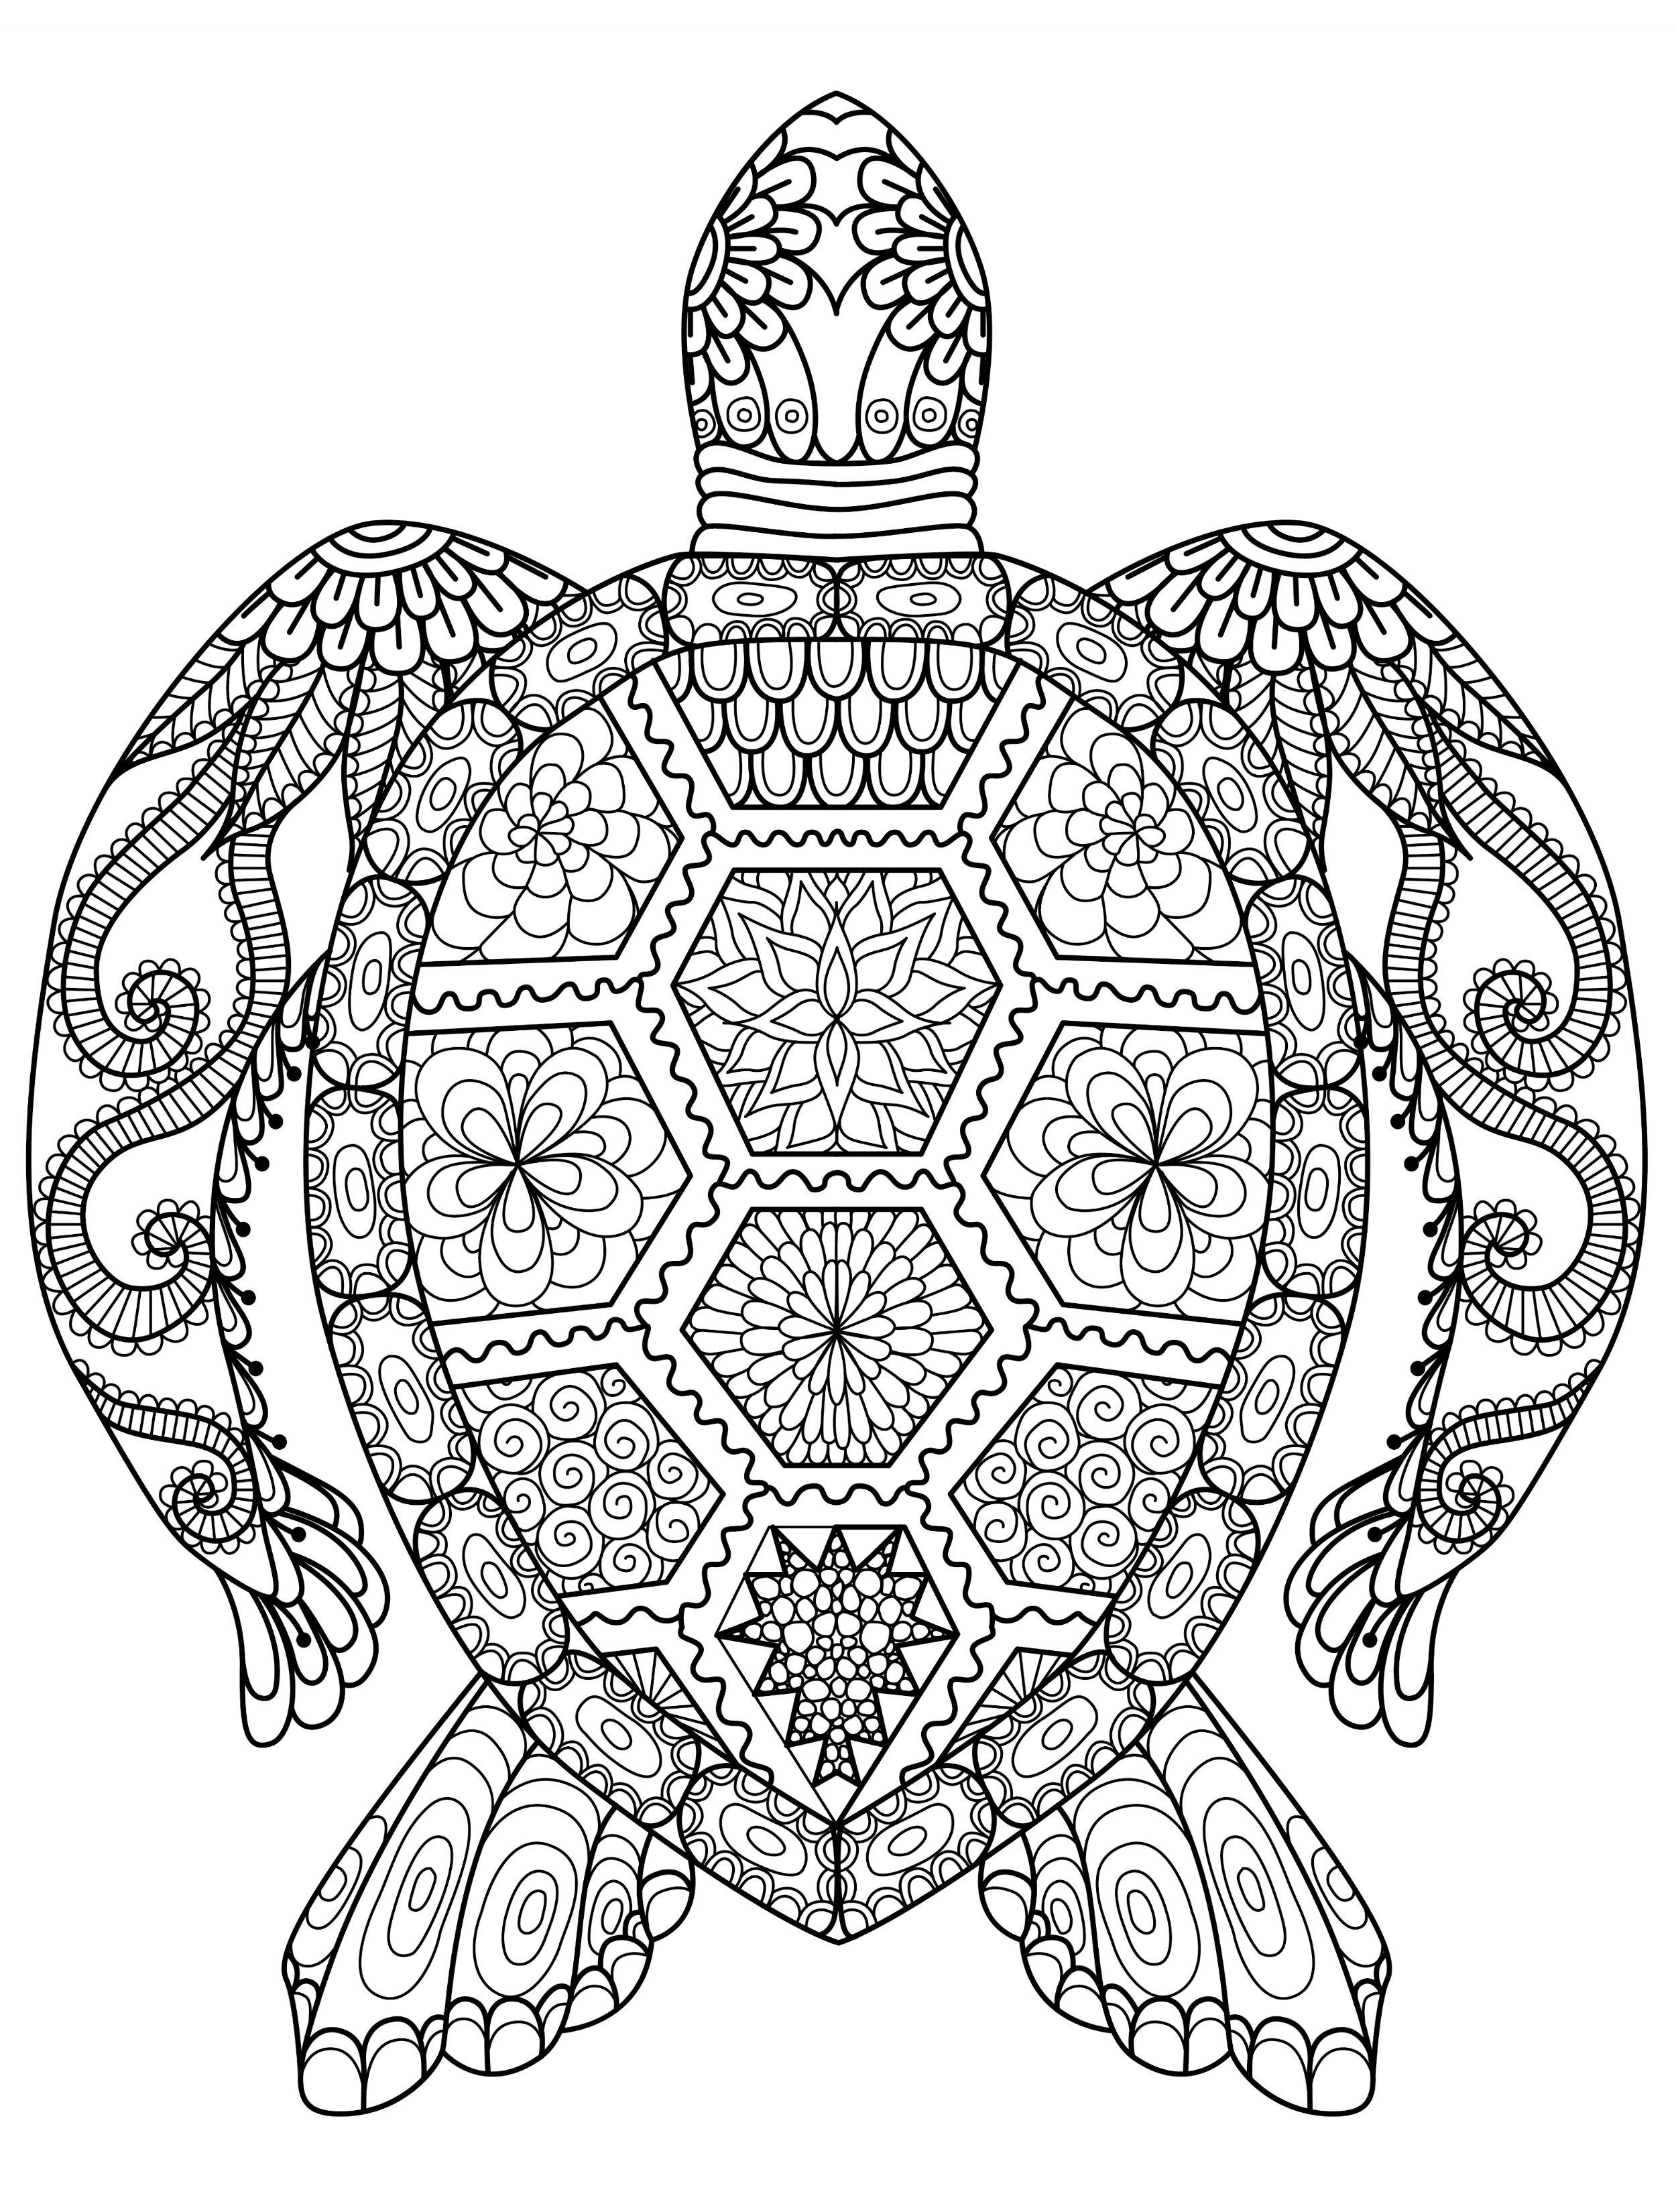 sea turtle coloring page for adults for free download | Coloring ...